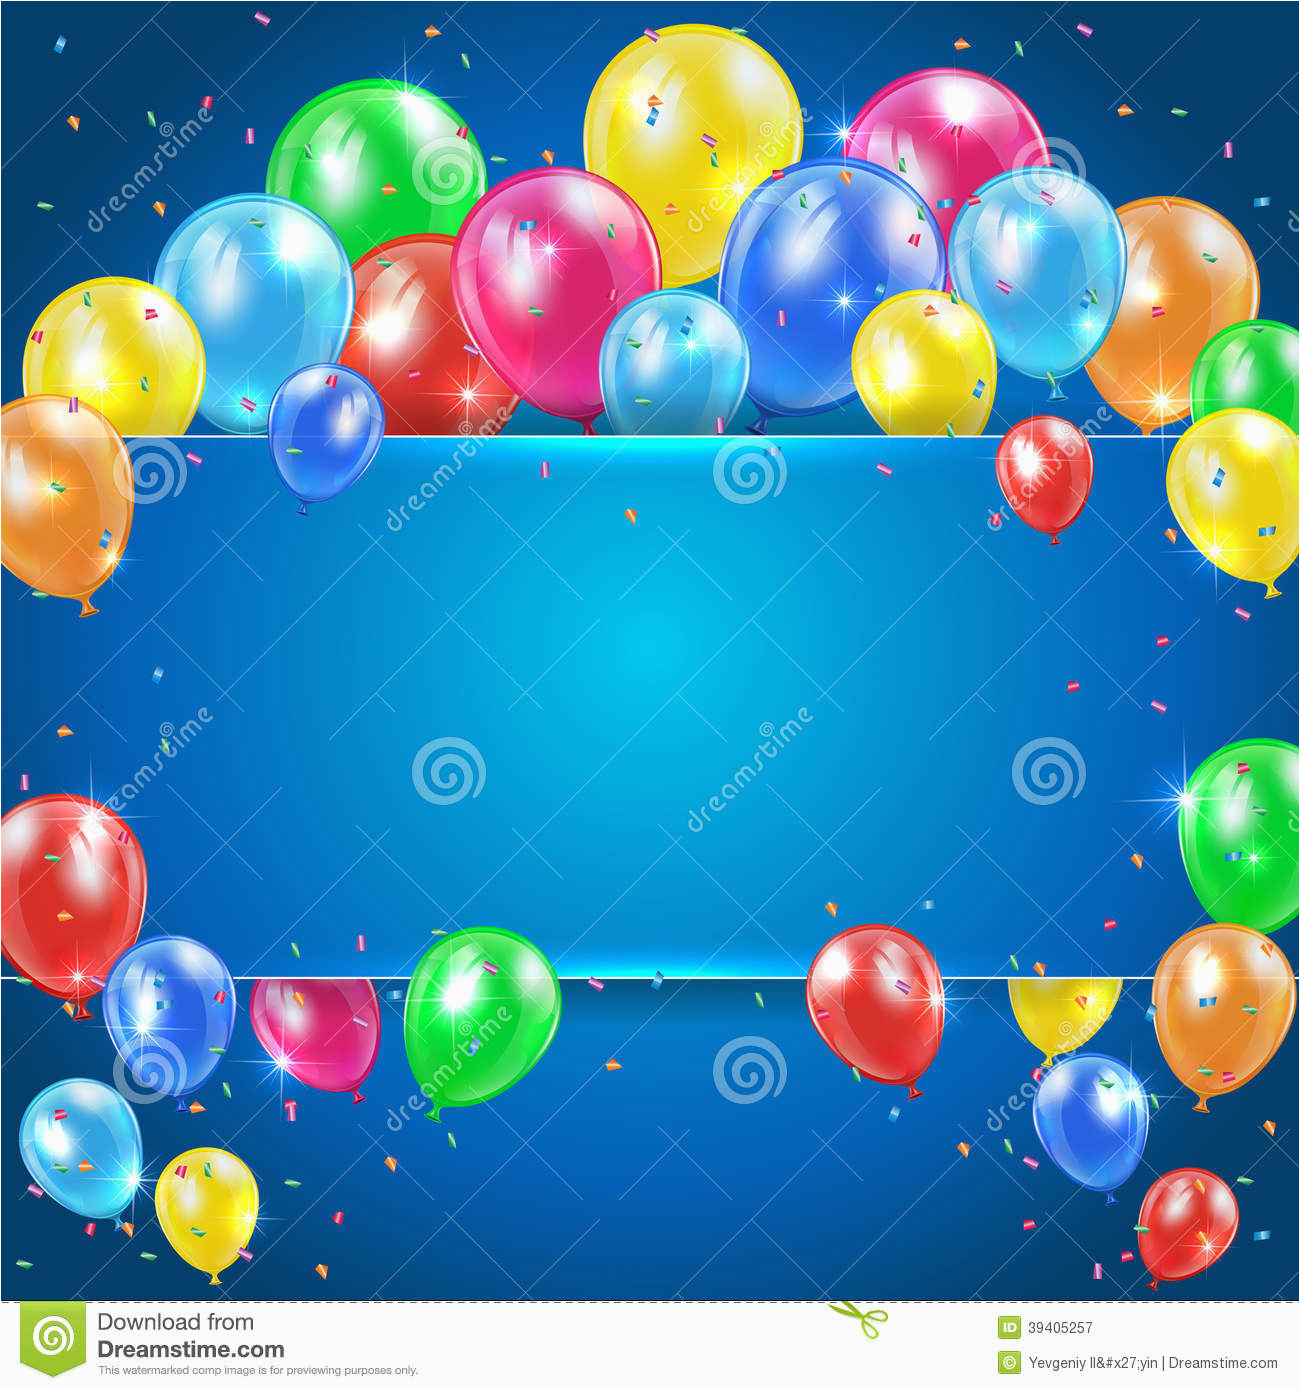 royalty free stock photography balloons blue background banner flying colored holiday illustration image39405257